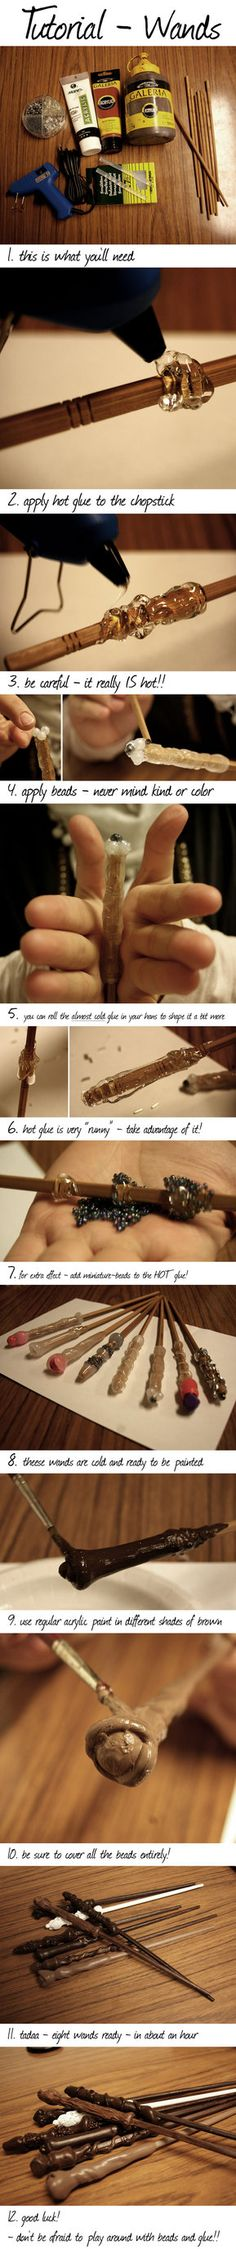 Homemade wands from chopsticks